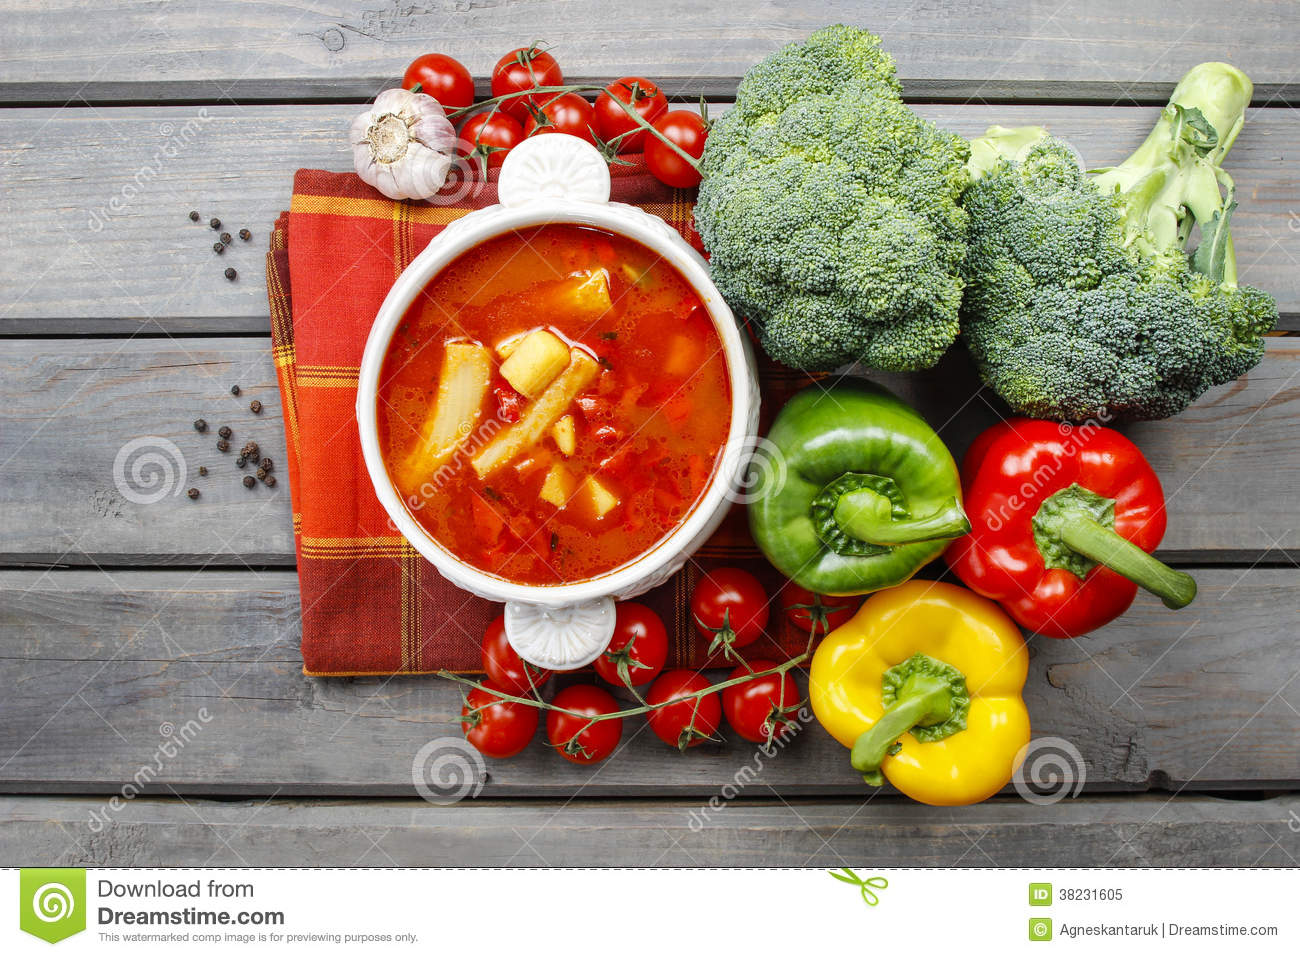 Top view of red tomato soup on wooden table. Fresh vegetables ar